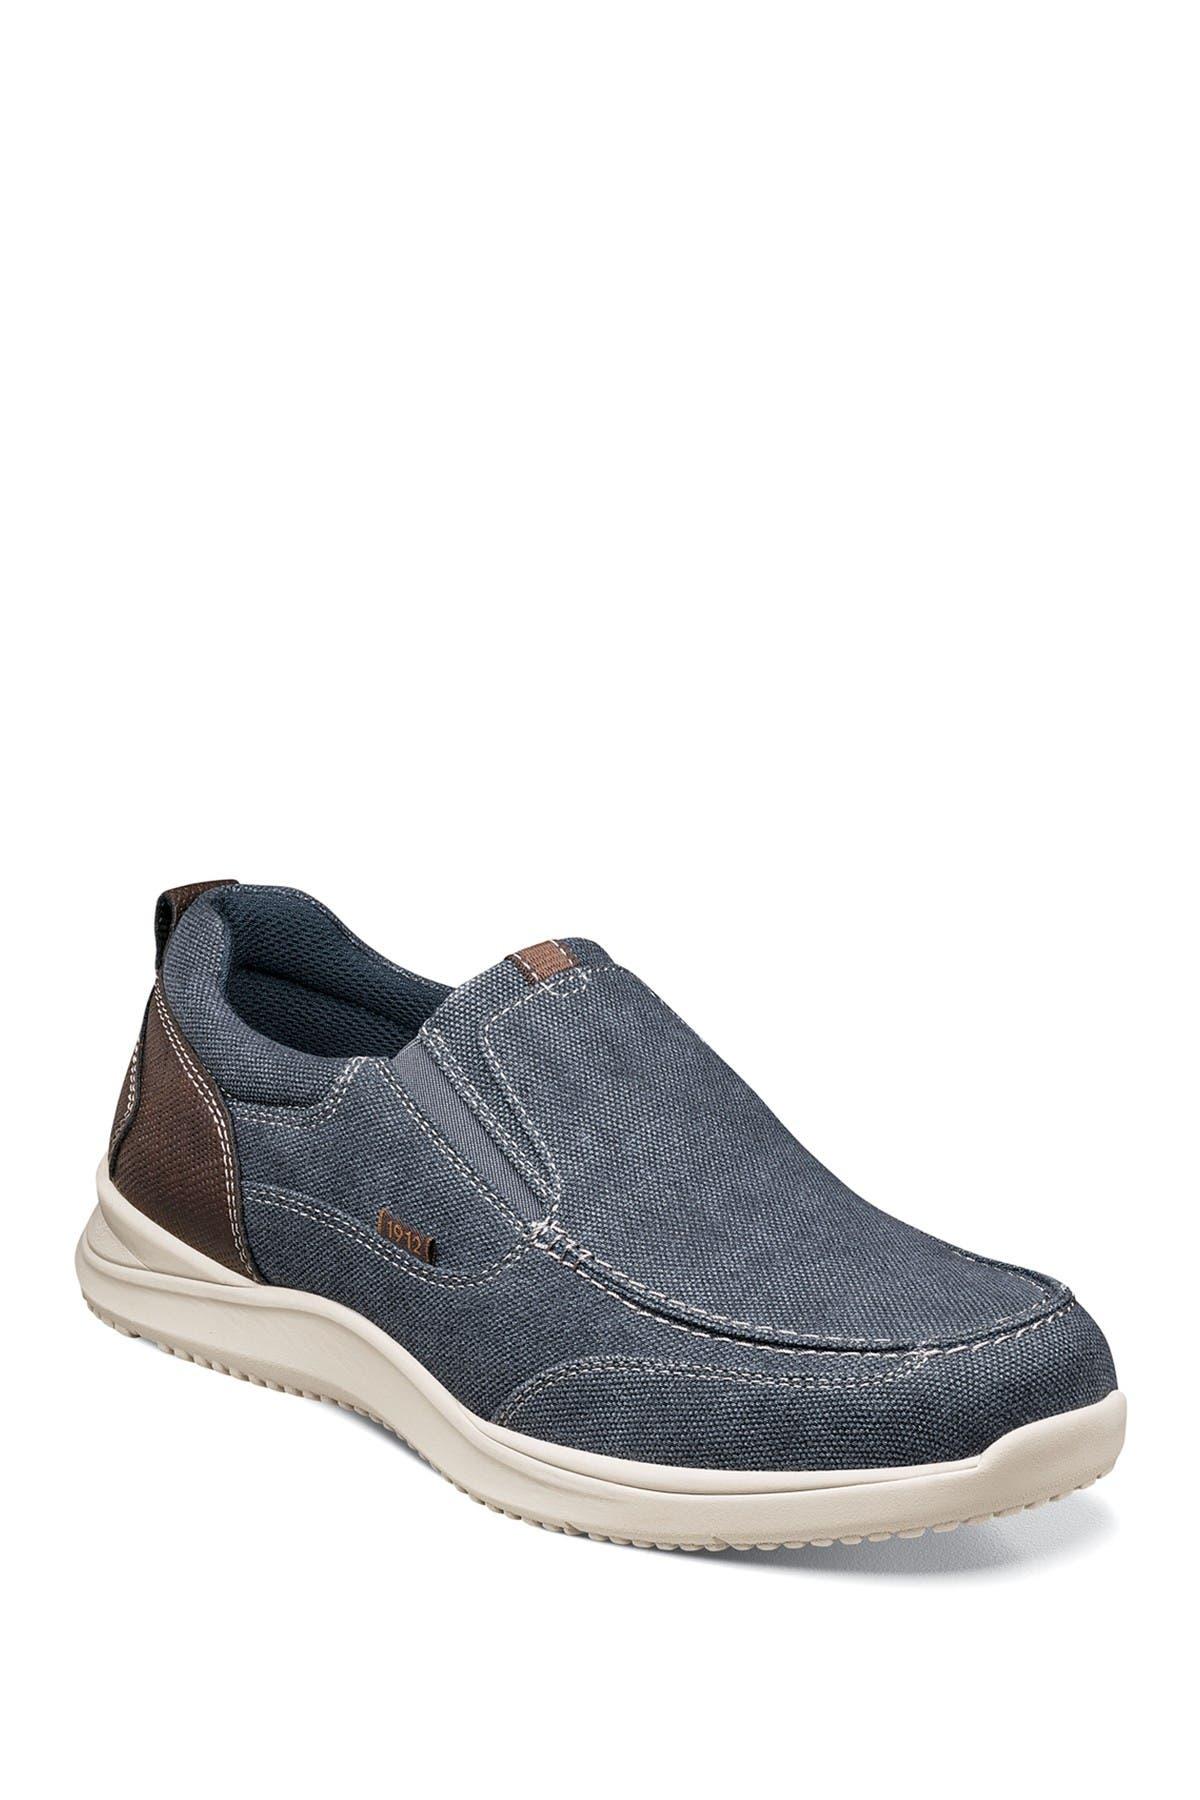 Image of NUNN BUSH Conway Canvas Slip-On Sneaker - Wide Width Available